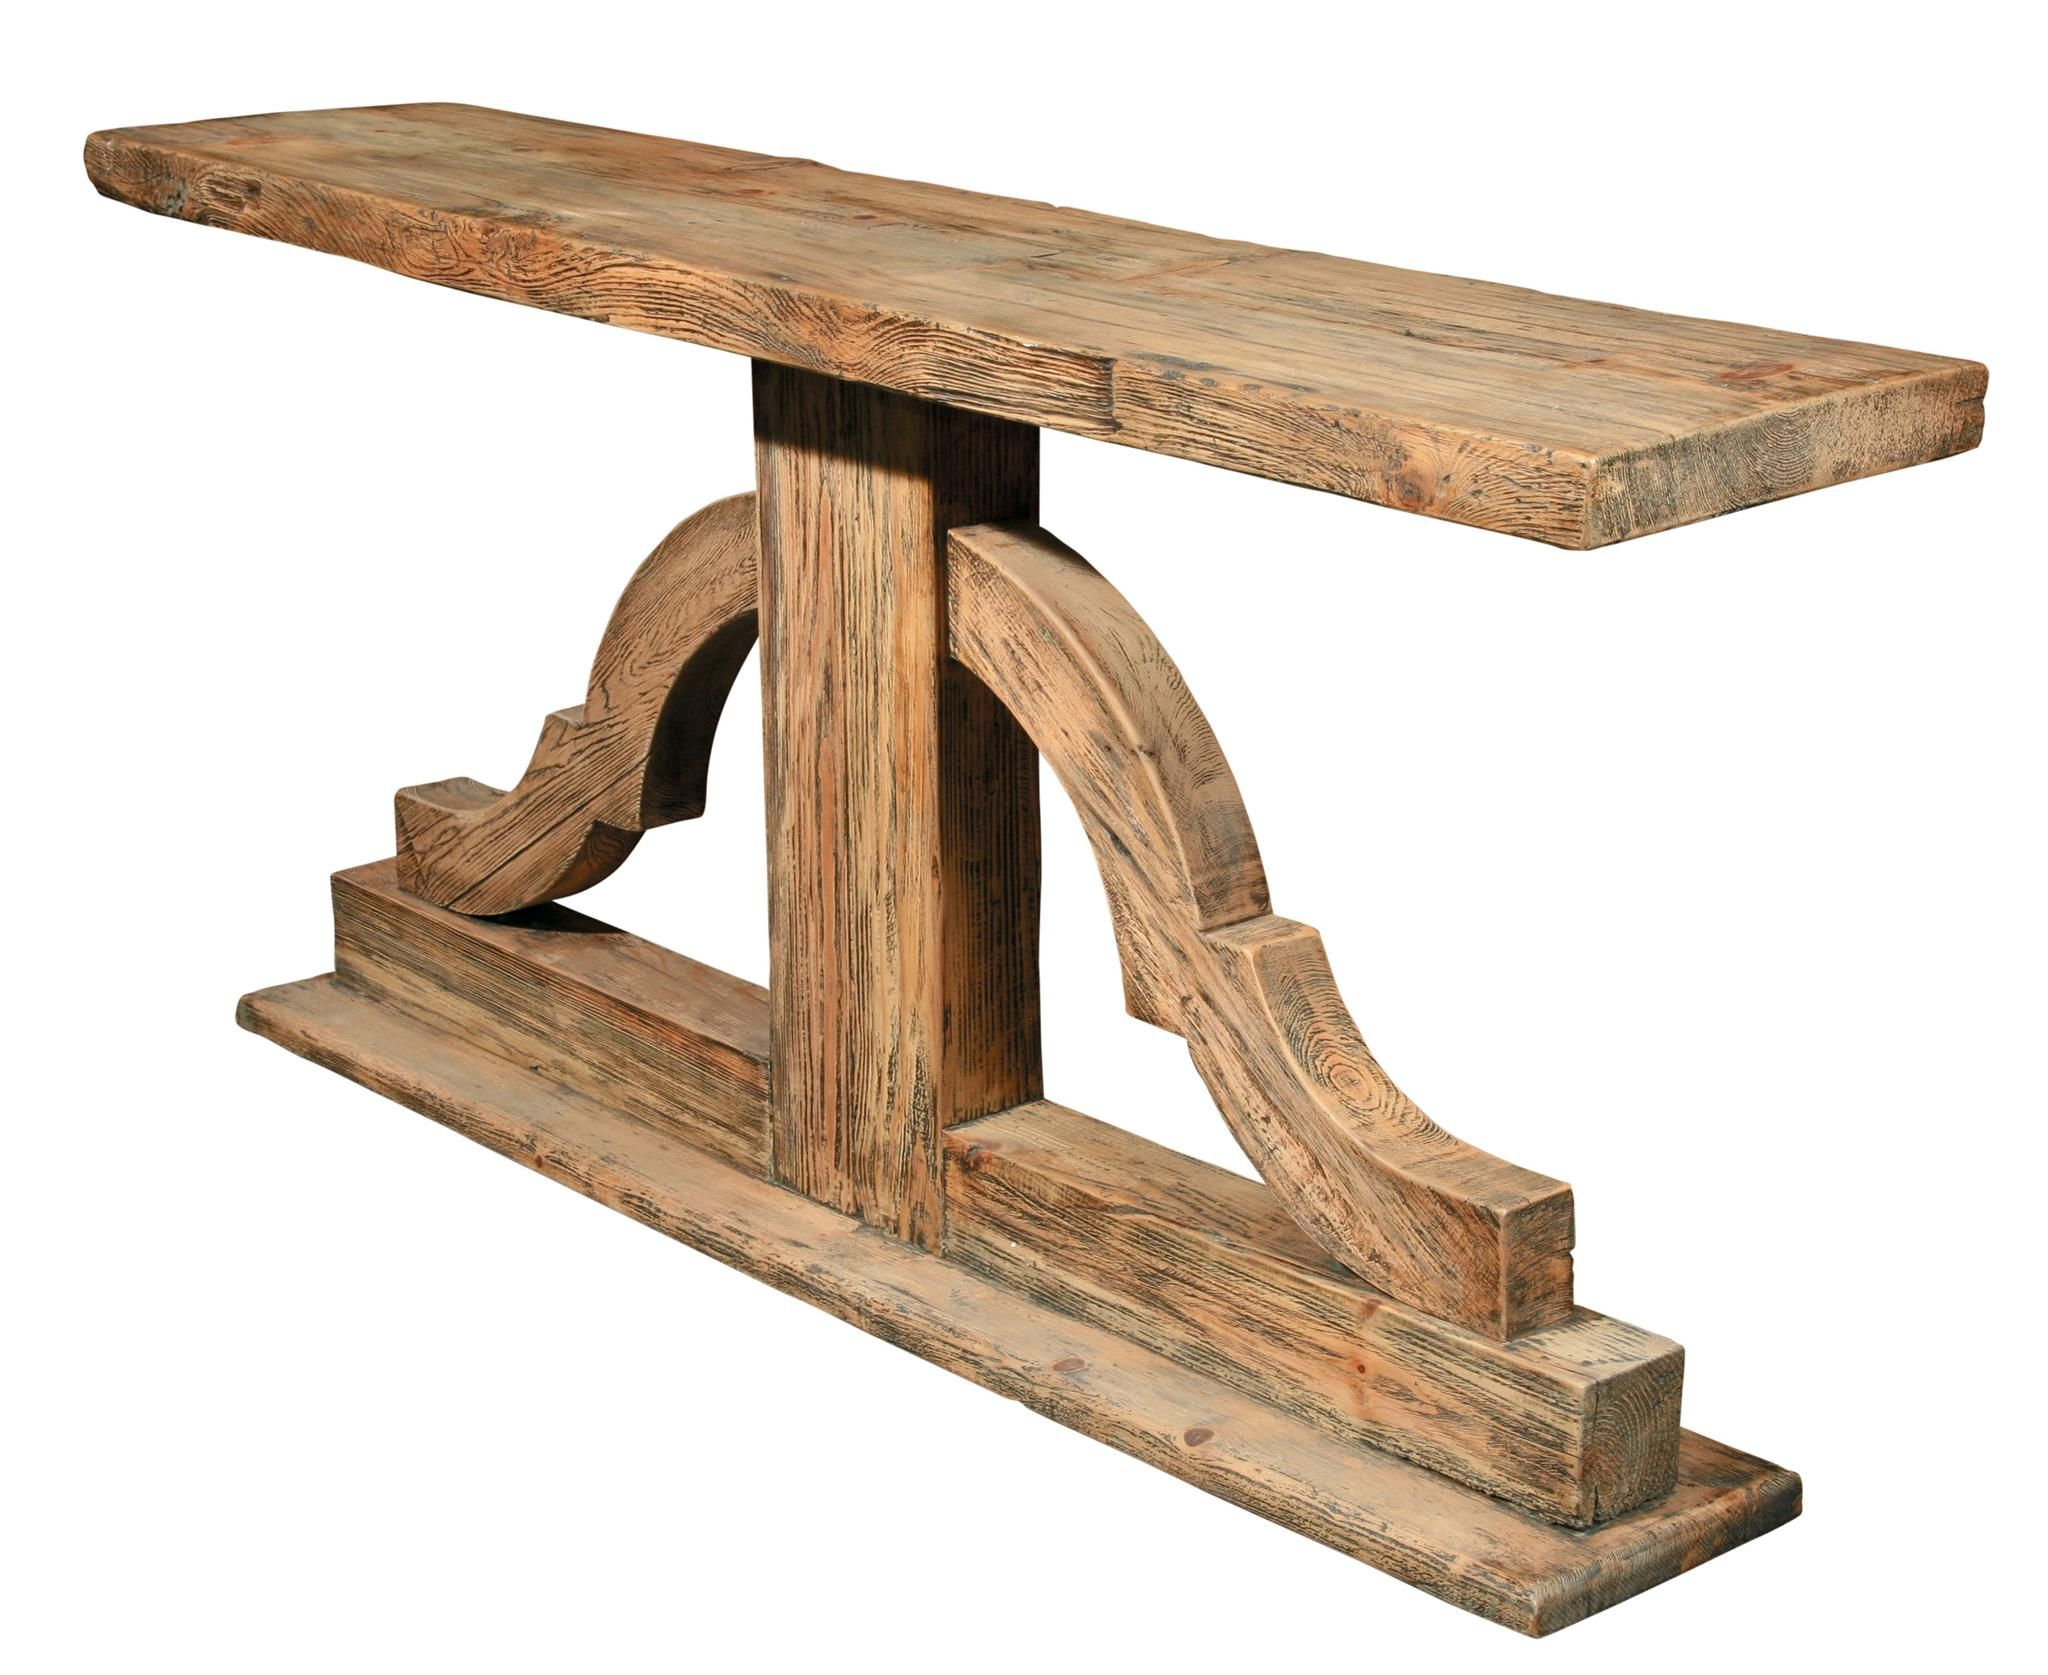 Httpenhancingyourhabitatcatalogfc72077lgg furniture classics ltd living room bracket console 498626 kittles furniture indiana and ohio geotapseo Image collections